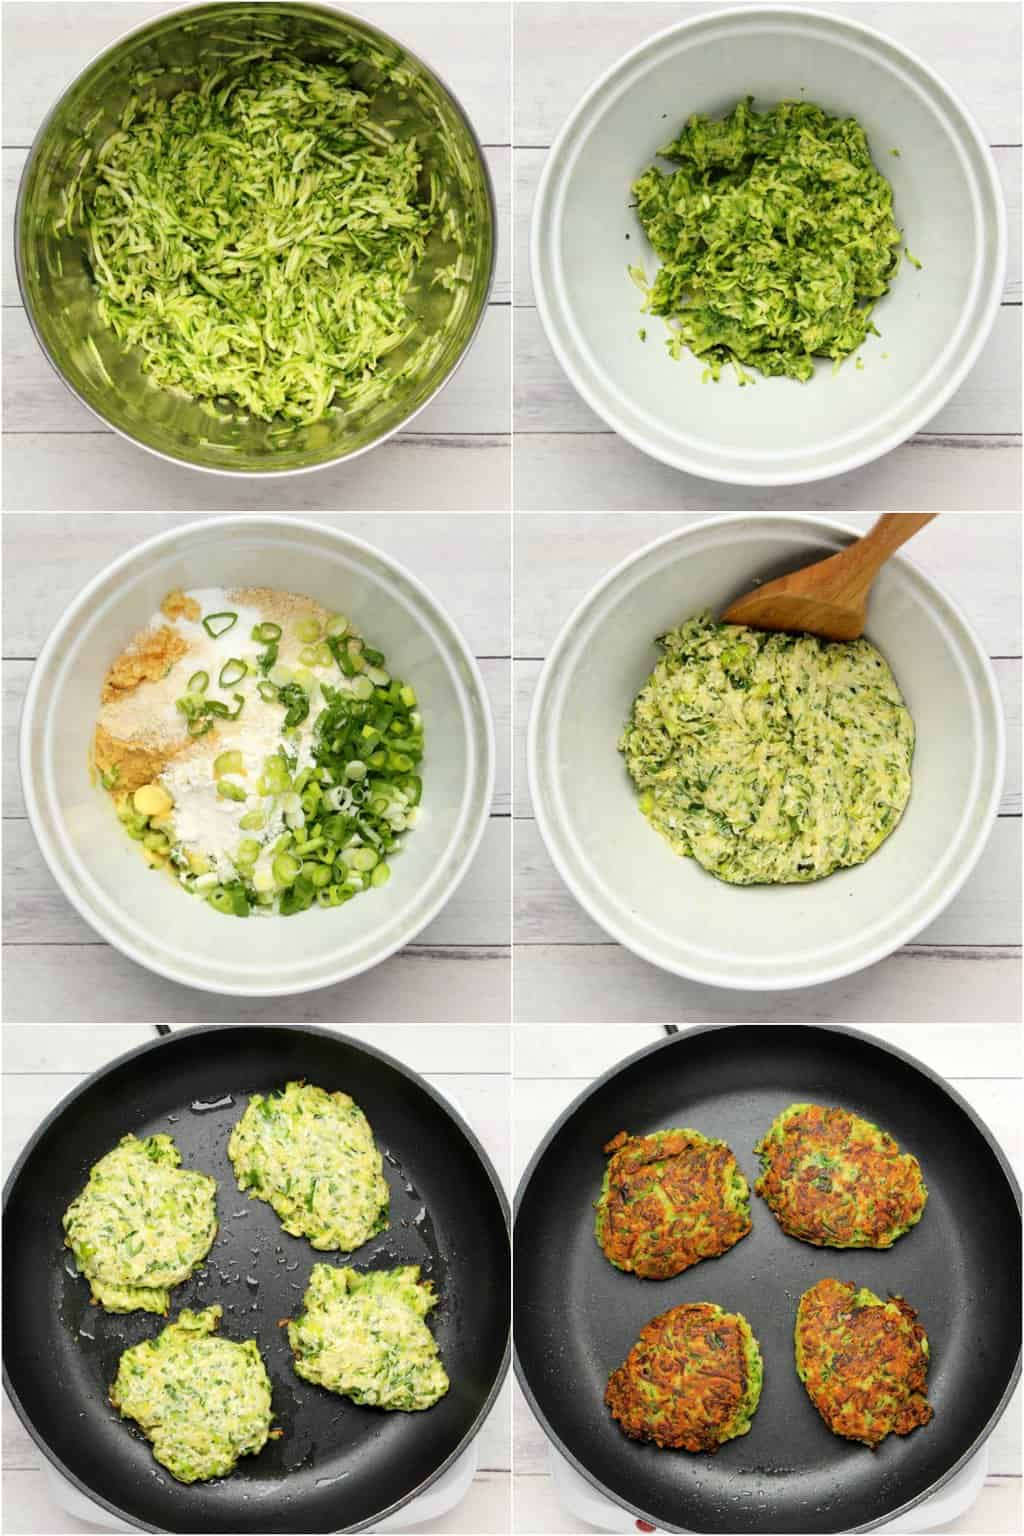 Step by step process photo collage of making vegan zucchini fritters.